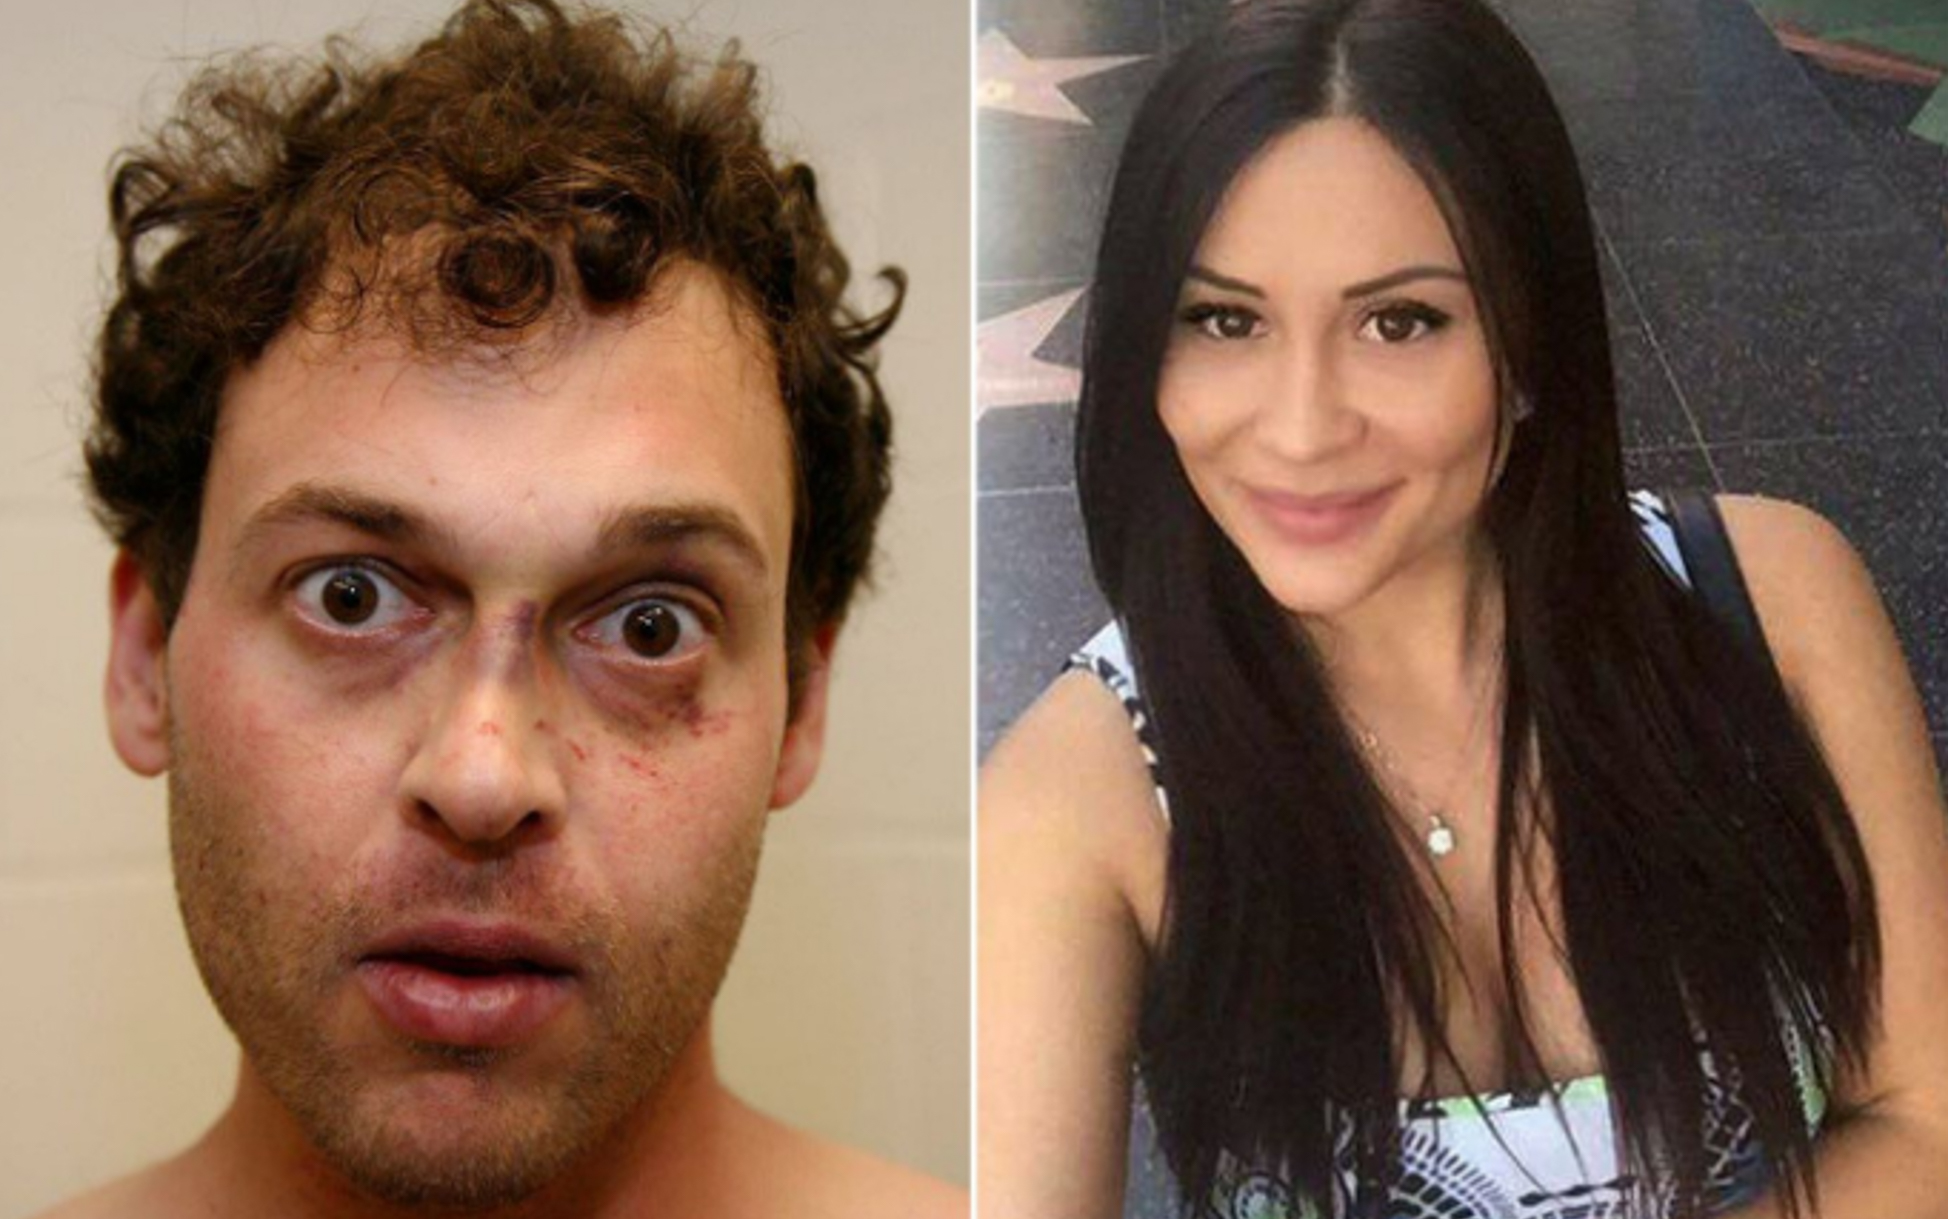 Blake Leibel Must Pay Iana Kasian's Family After Killing Her | Crime